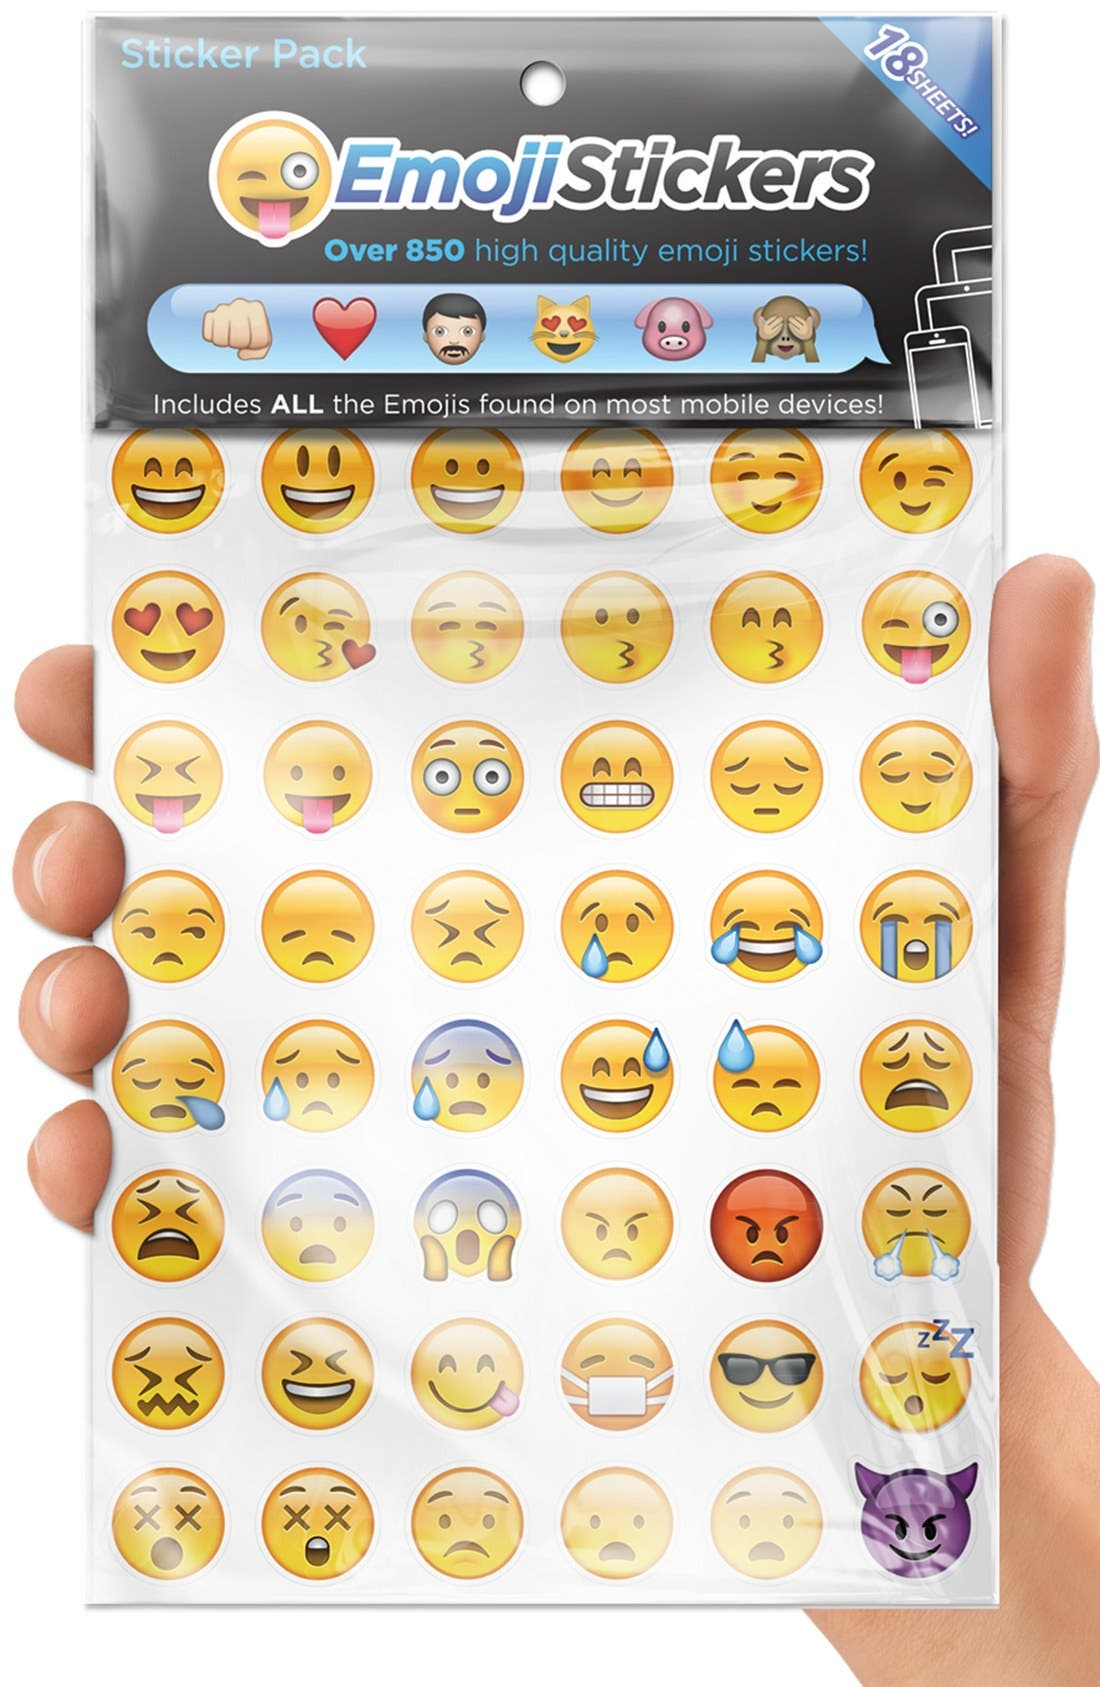 Main Image - Emoji Sticker Pack Emoji Stickers (18-Pack)